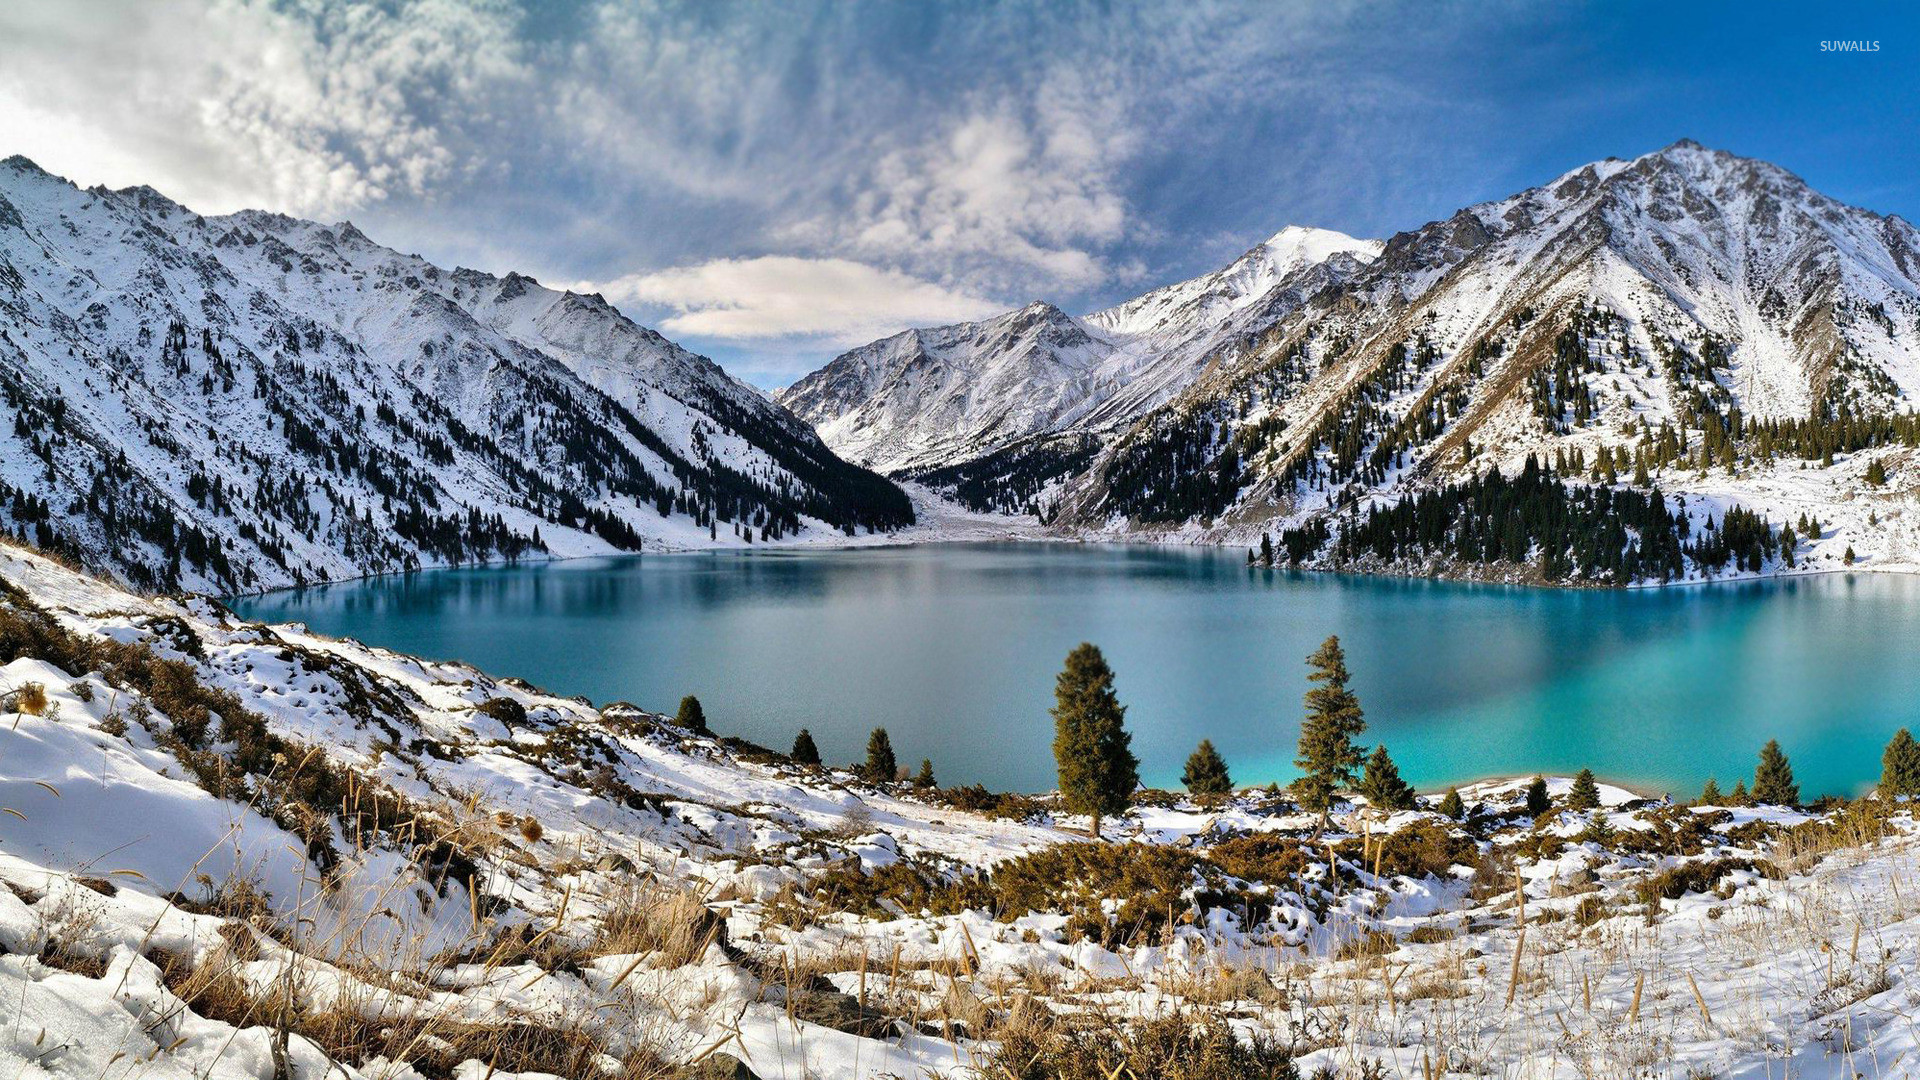 Res: 1920x1080, Snowy mountains lake wallpaper